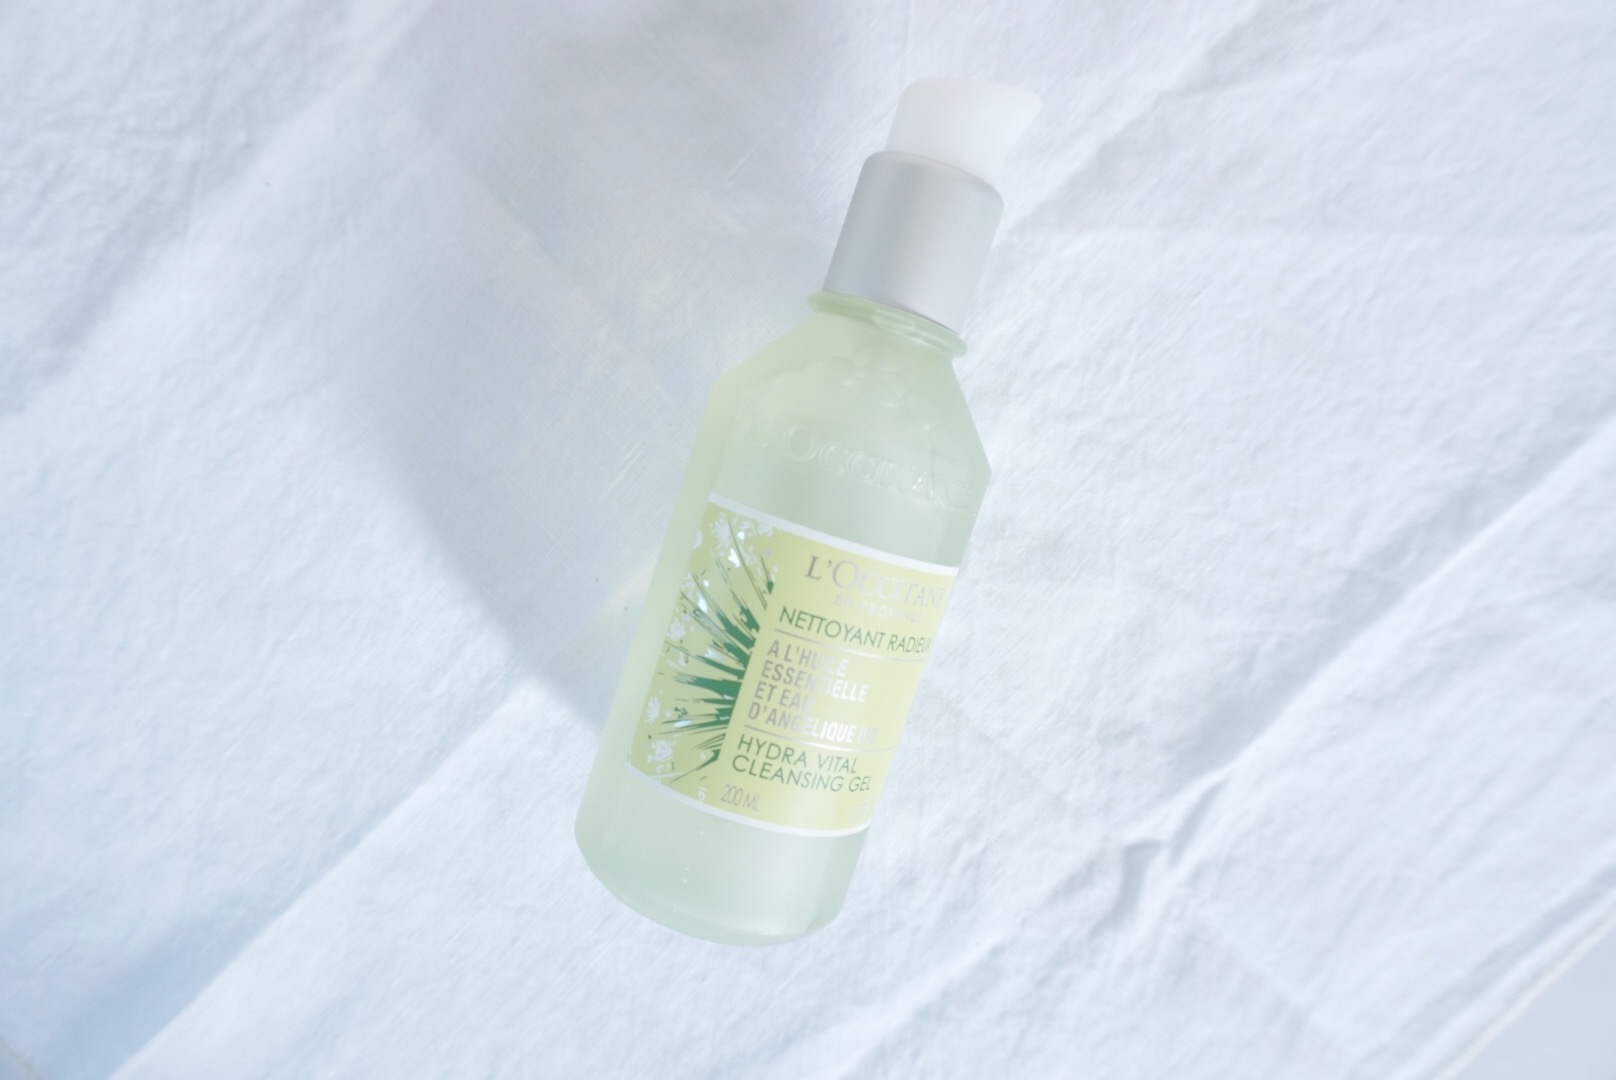 L'Occitane Hydra Vital Angelica Cleansing Gel Review